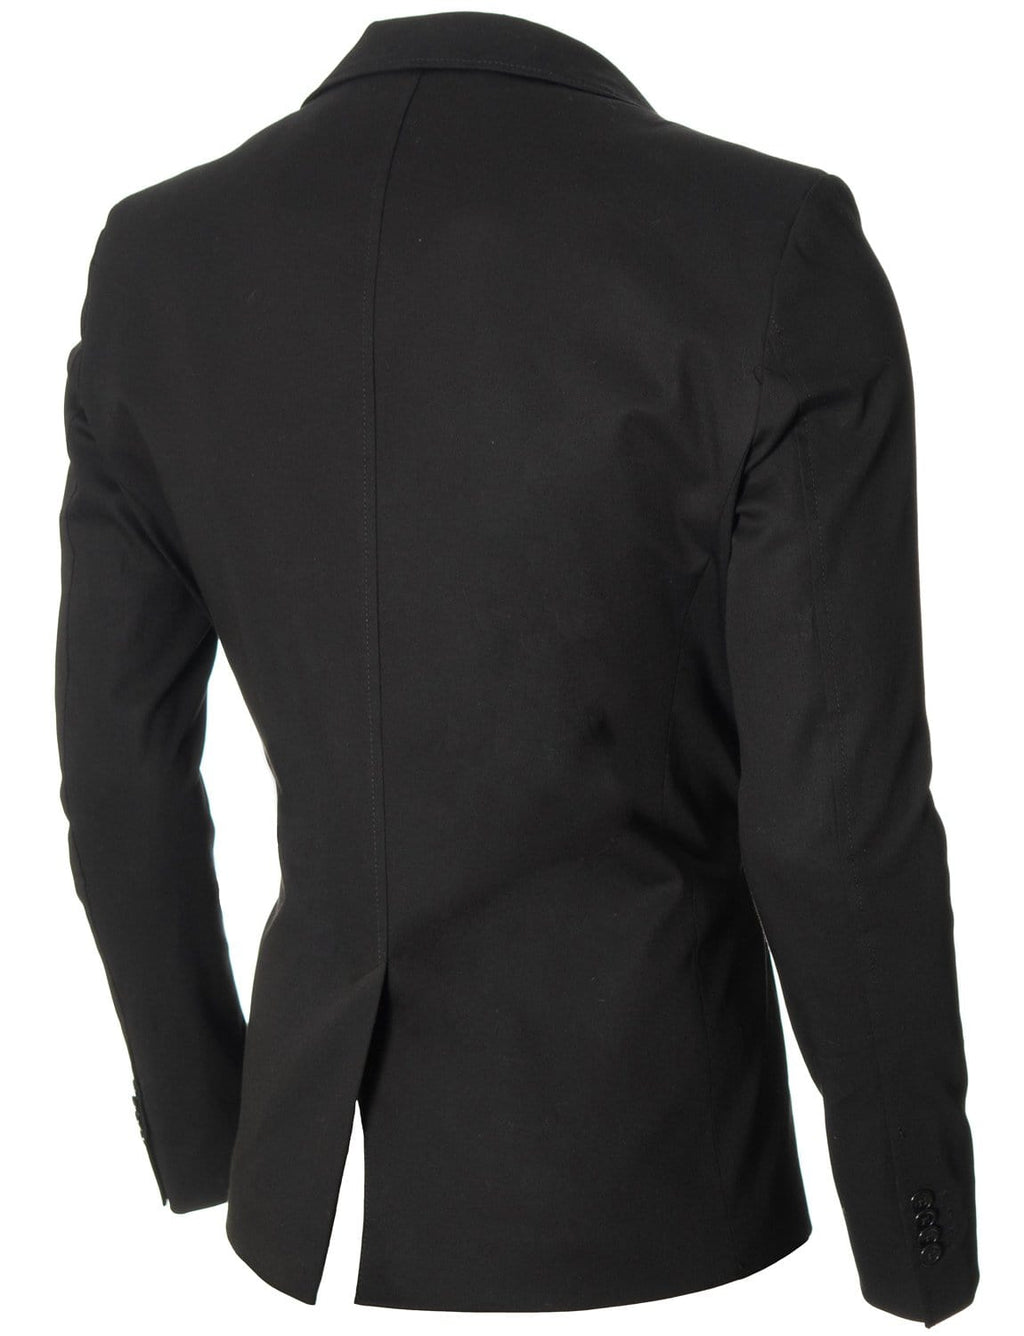 Mens slim fit cotton business blazer black (MOD14519B)